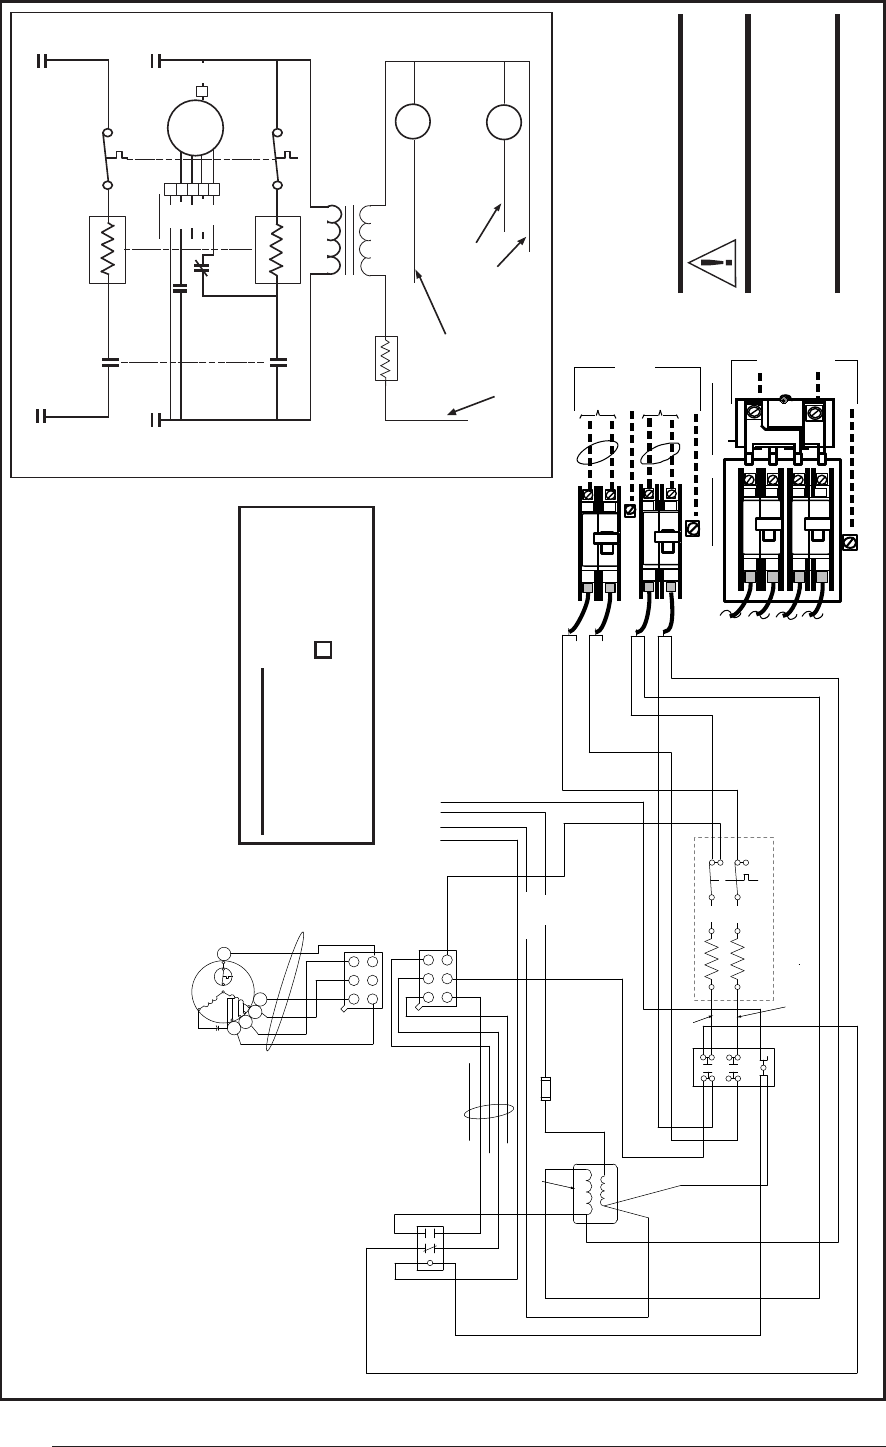 nordyne electric furnace e3eb 010h diagram   42 wiring